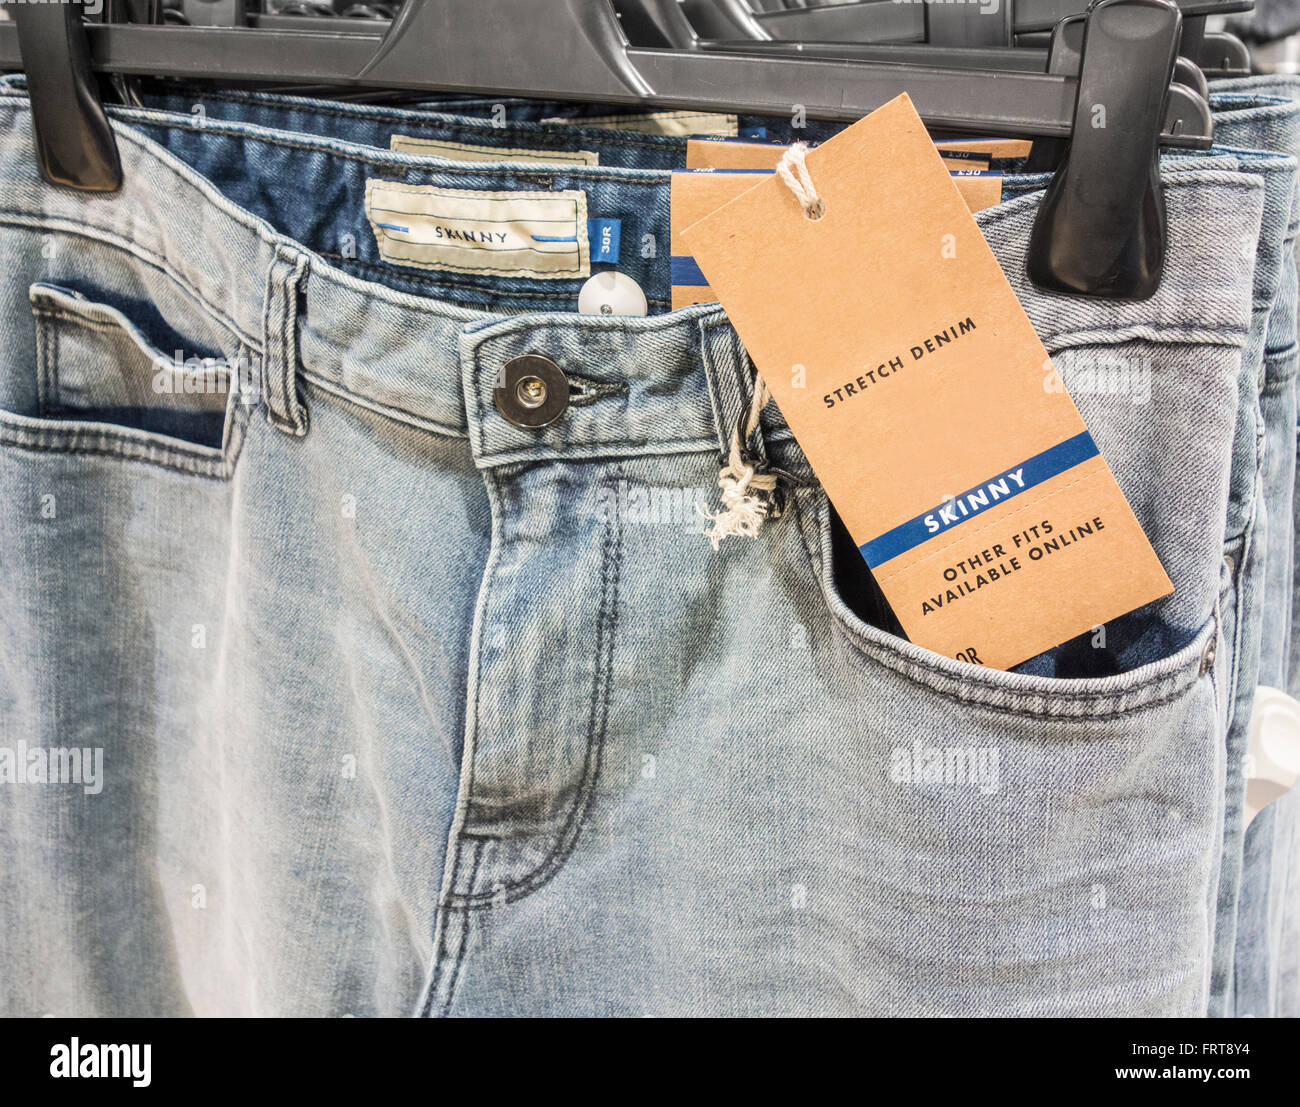 Skinny jeans in mens clothing store. UK - Stock Image